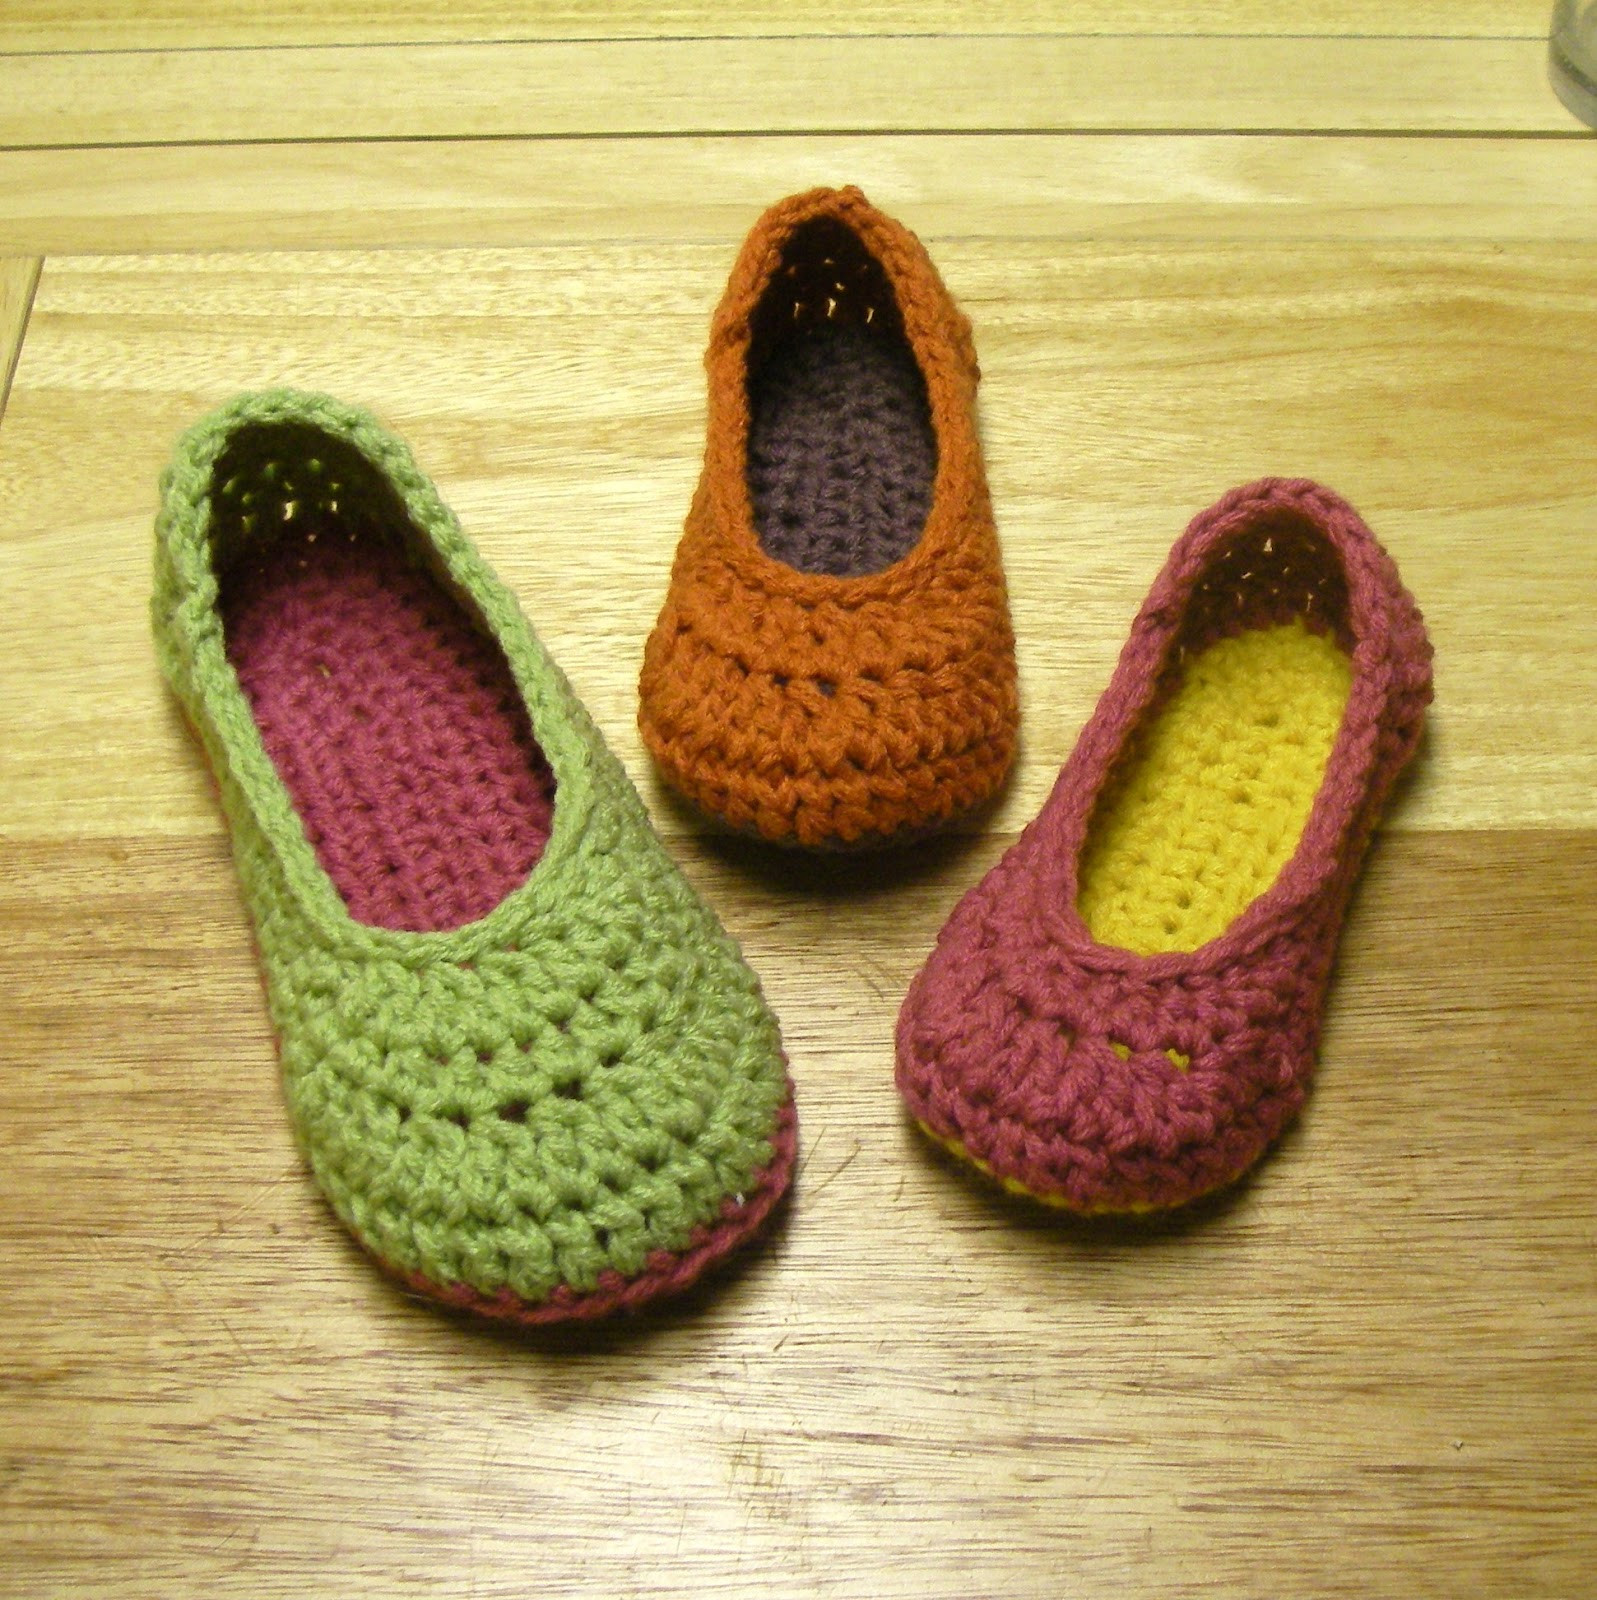 Crochet Slipper Pattern Inspirational Important All Content Has Been Moved to Mamachee Of Gorgeous 44 Pics Crochet Slipper Pattern